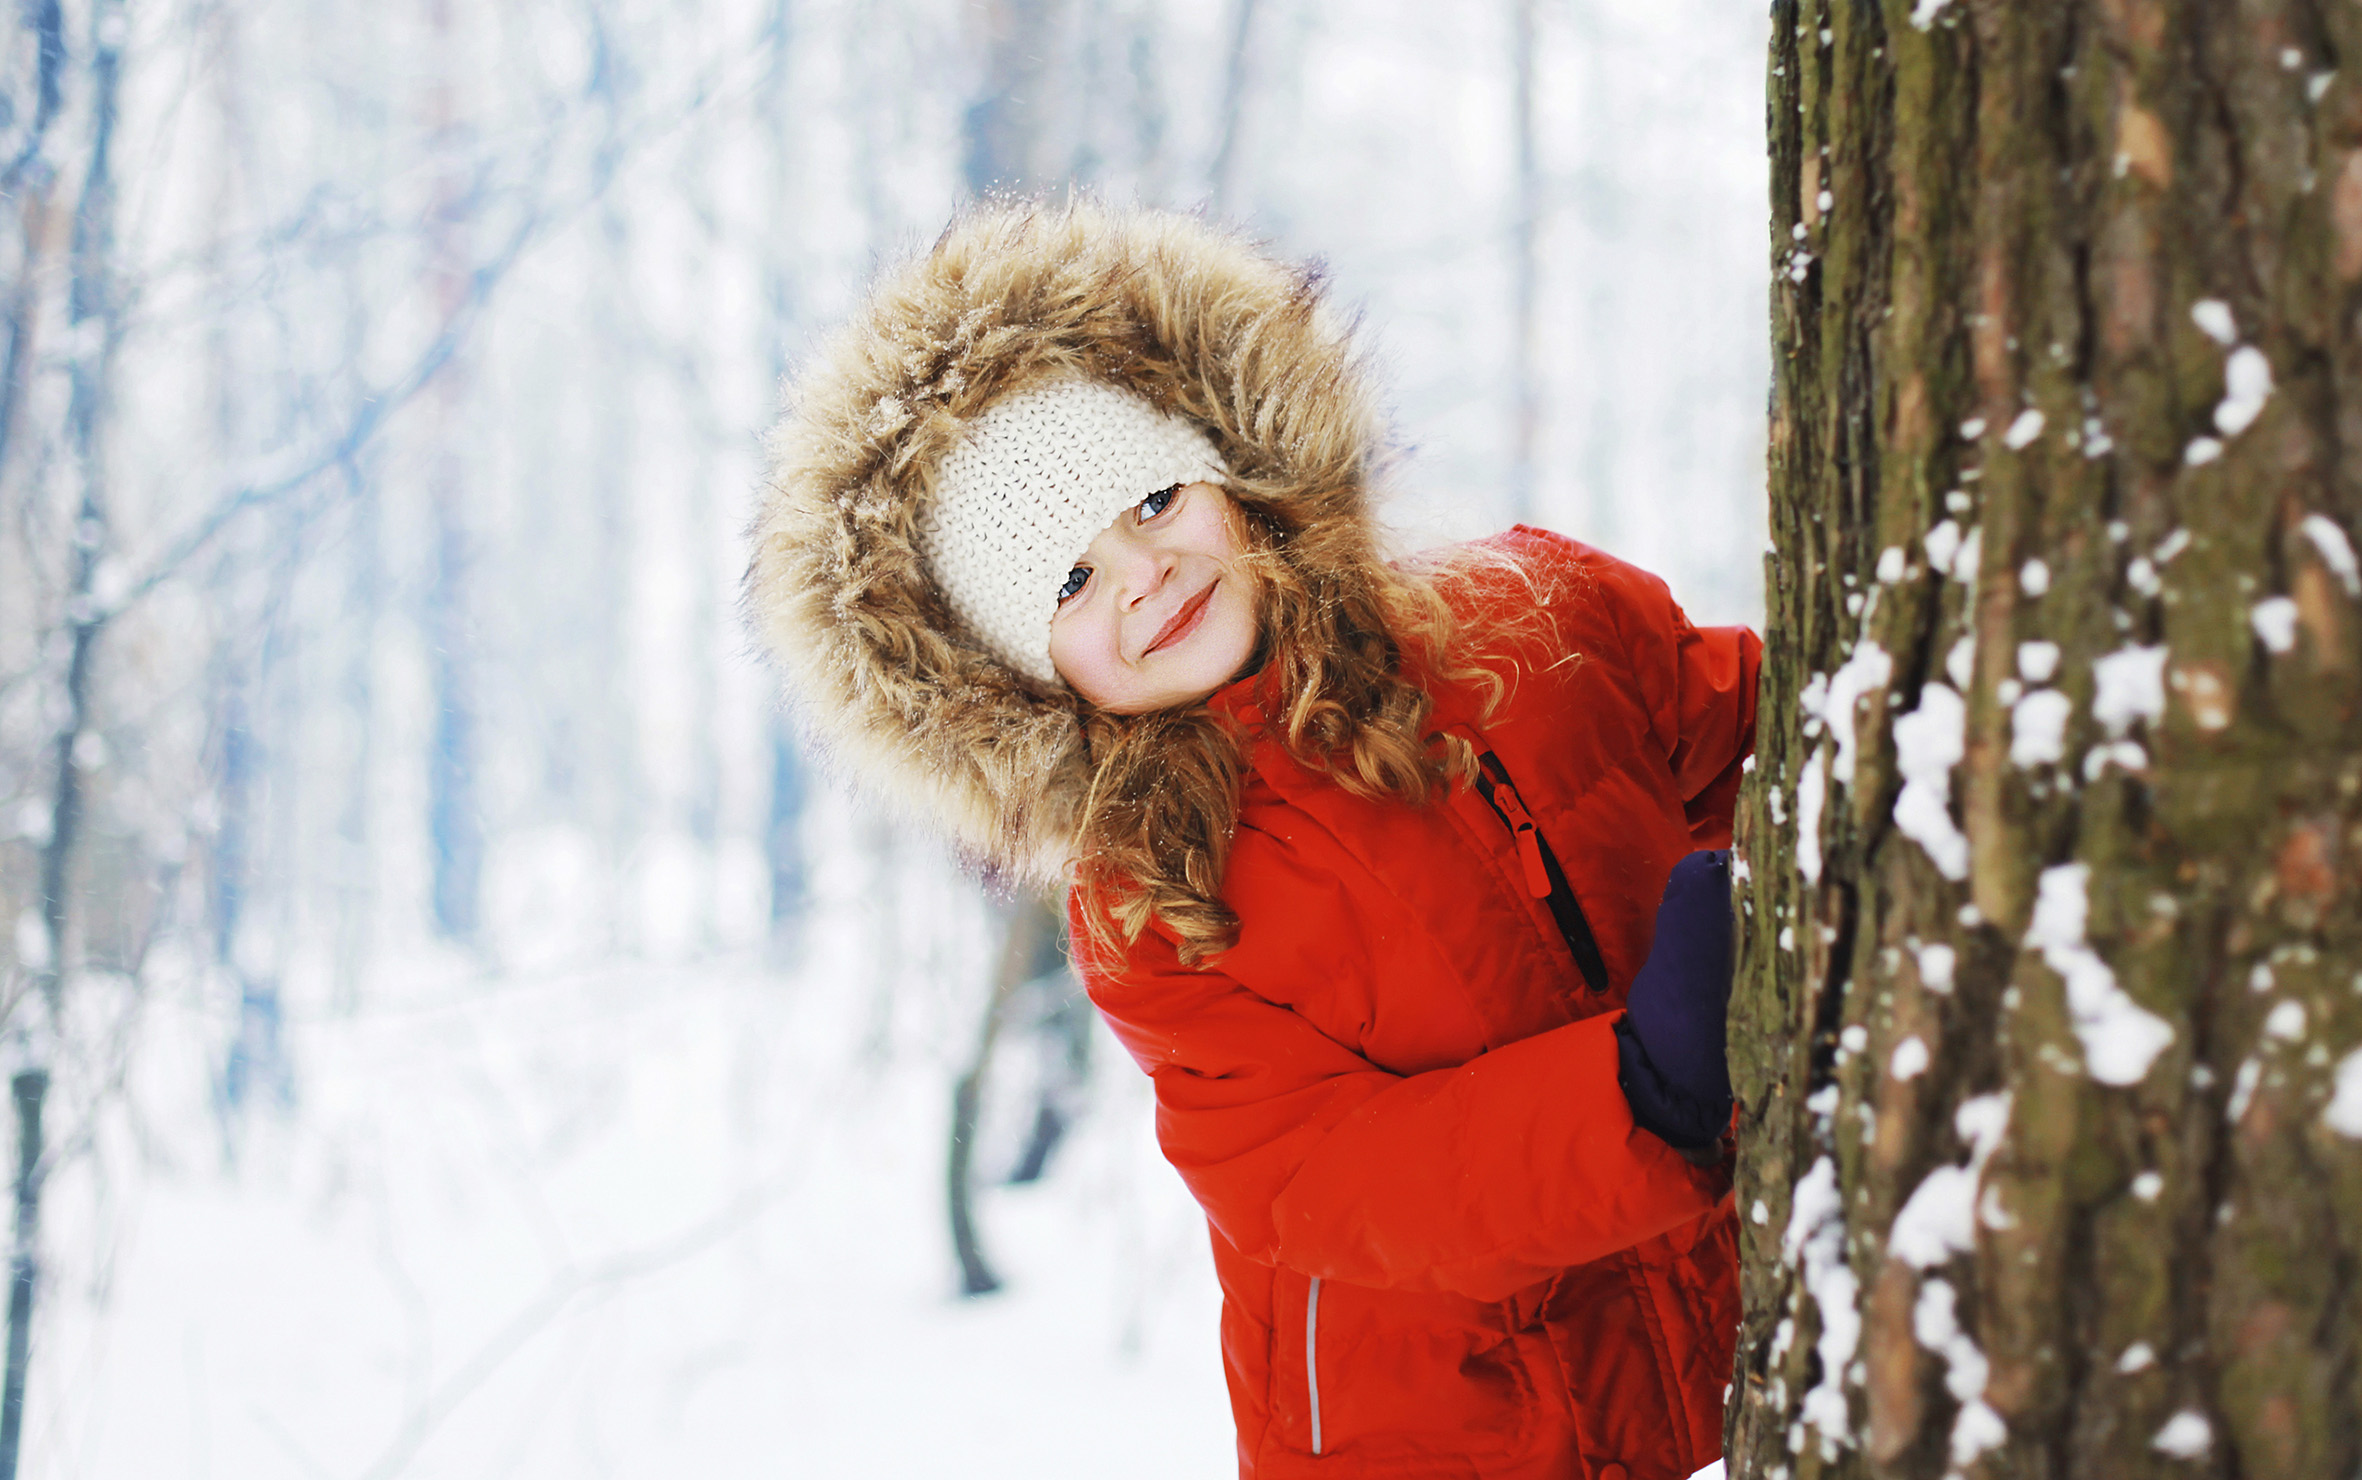 Child having fun outdoors with snowball in winter snowy forest